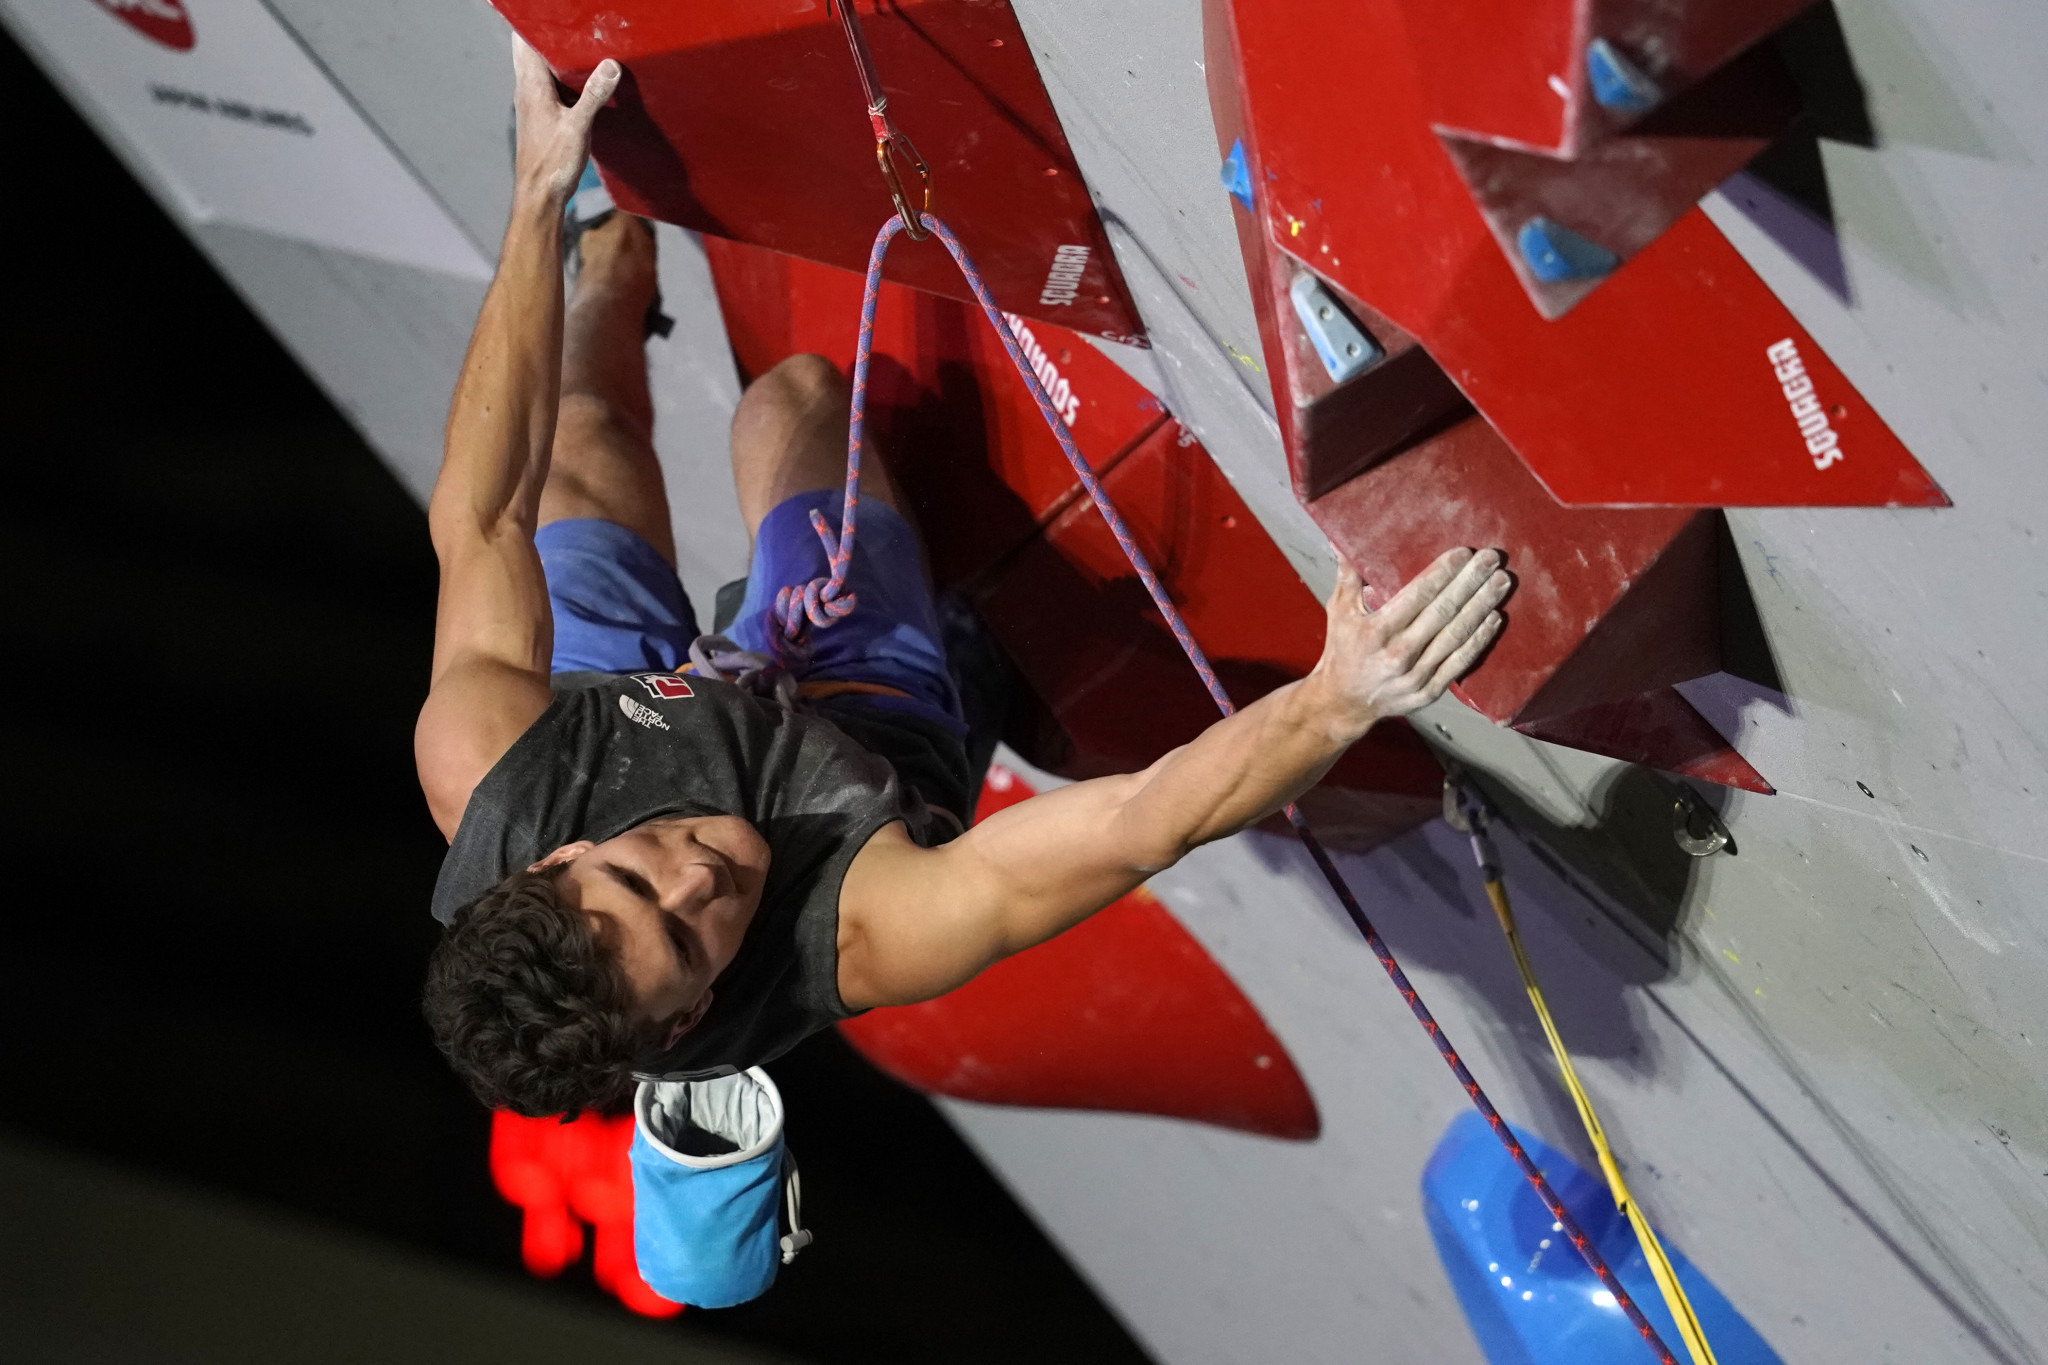 Salt Lake City to stage back-to-back IFSC World Cup events